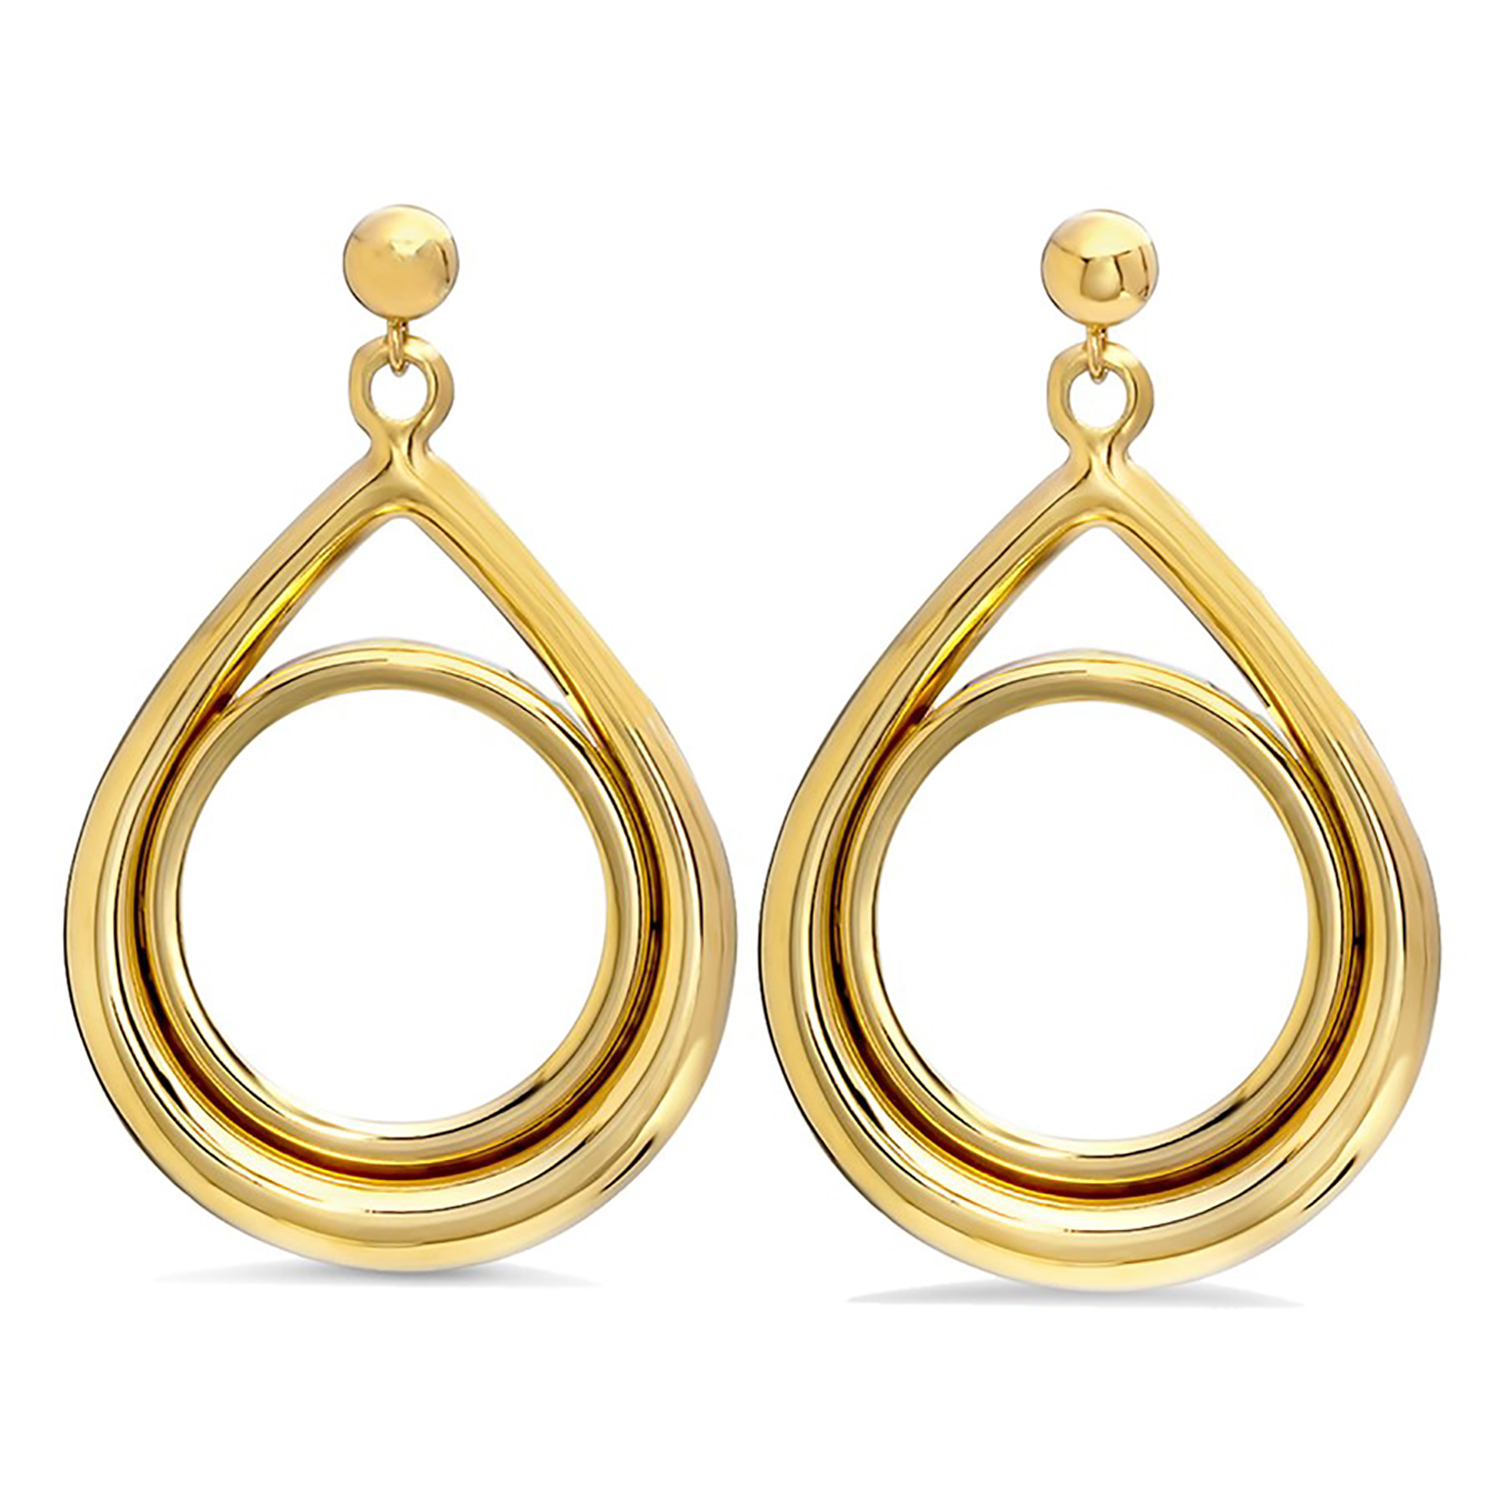 14k Gold Prong Tear Drop Dangle Coin Earrings - 14 mm